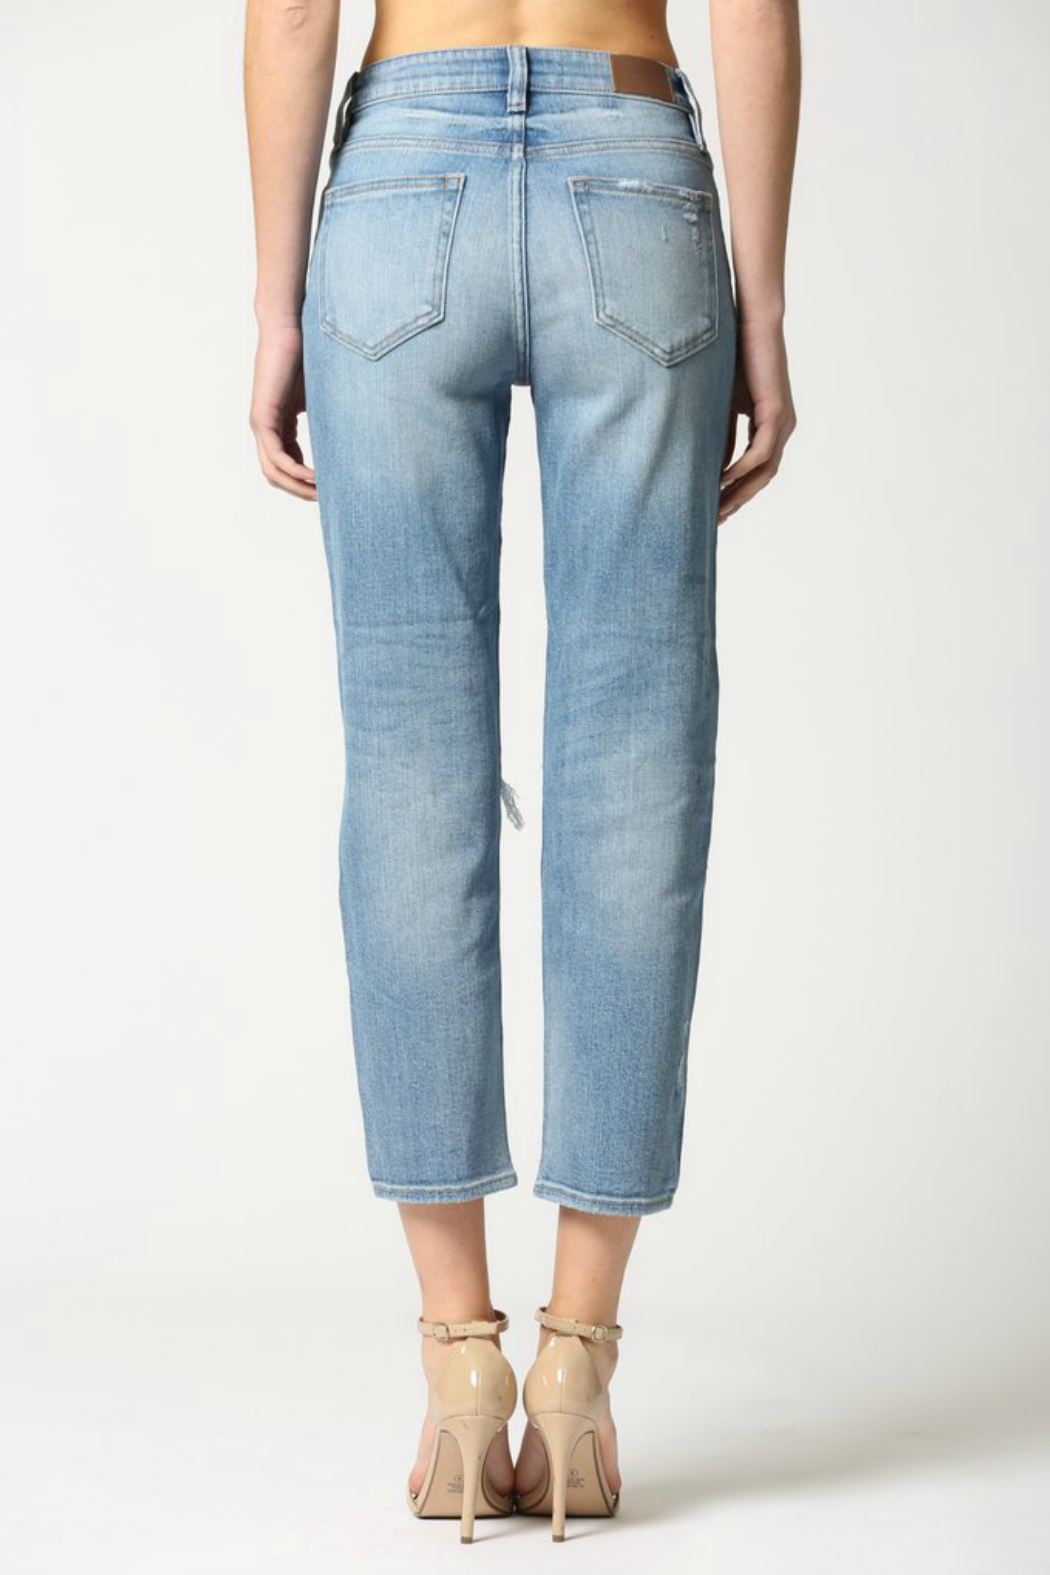 Hidden Jeans Zoey Mom Jeans - Front Full Image